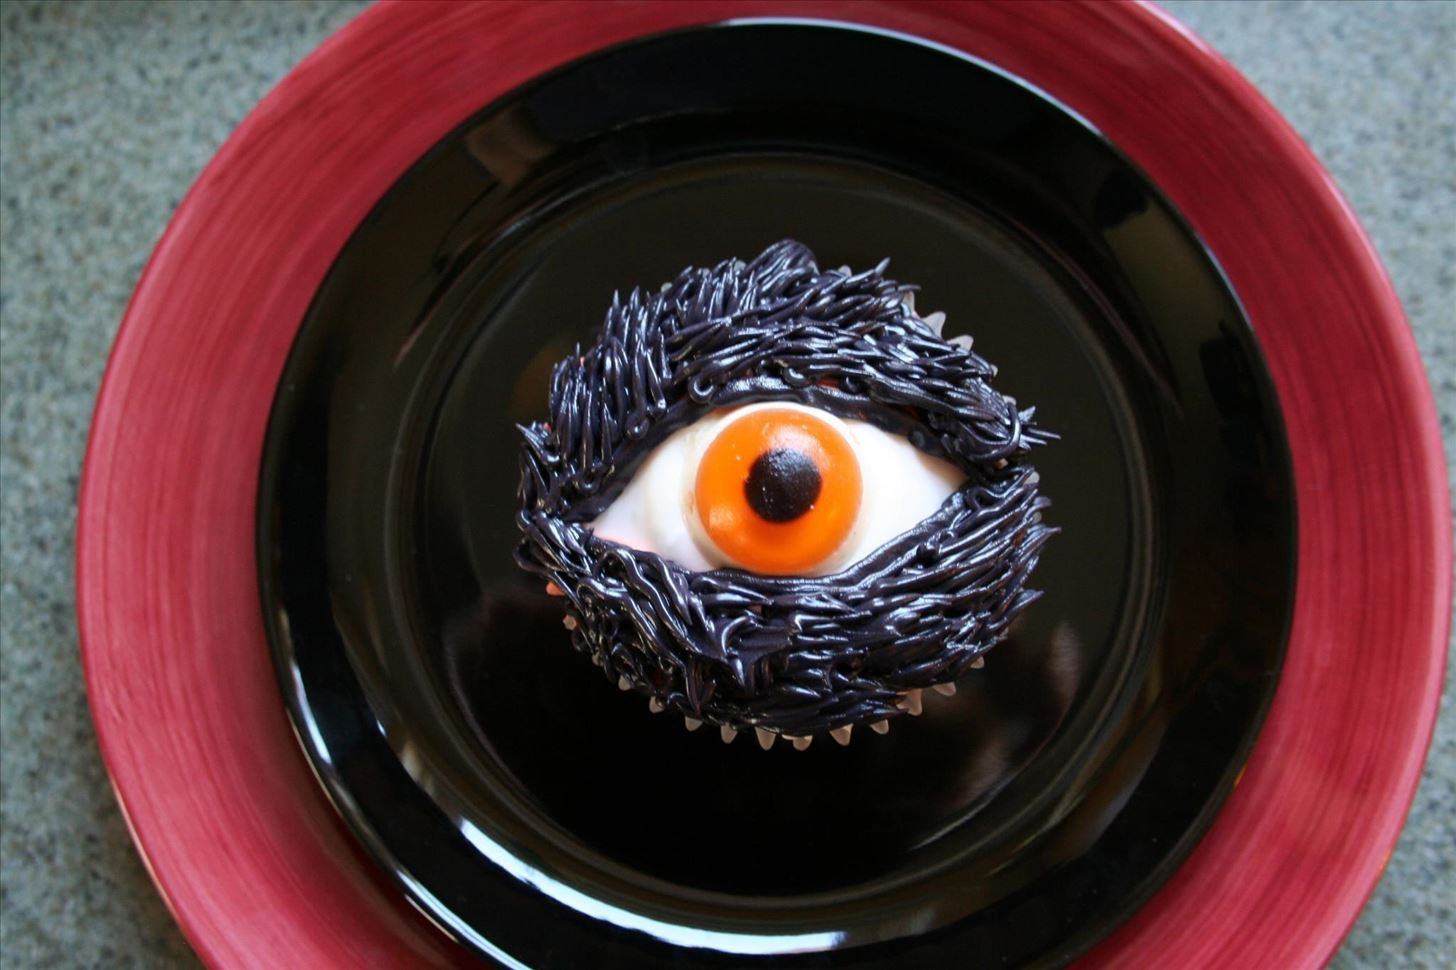 6unnerving eyeball cupcakes - Scary Halloween Cupcake Ideas